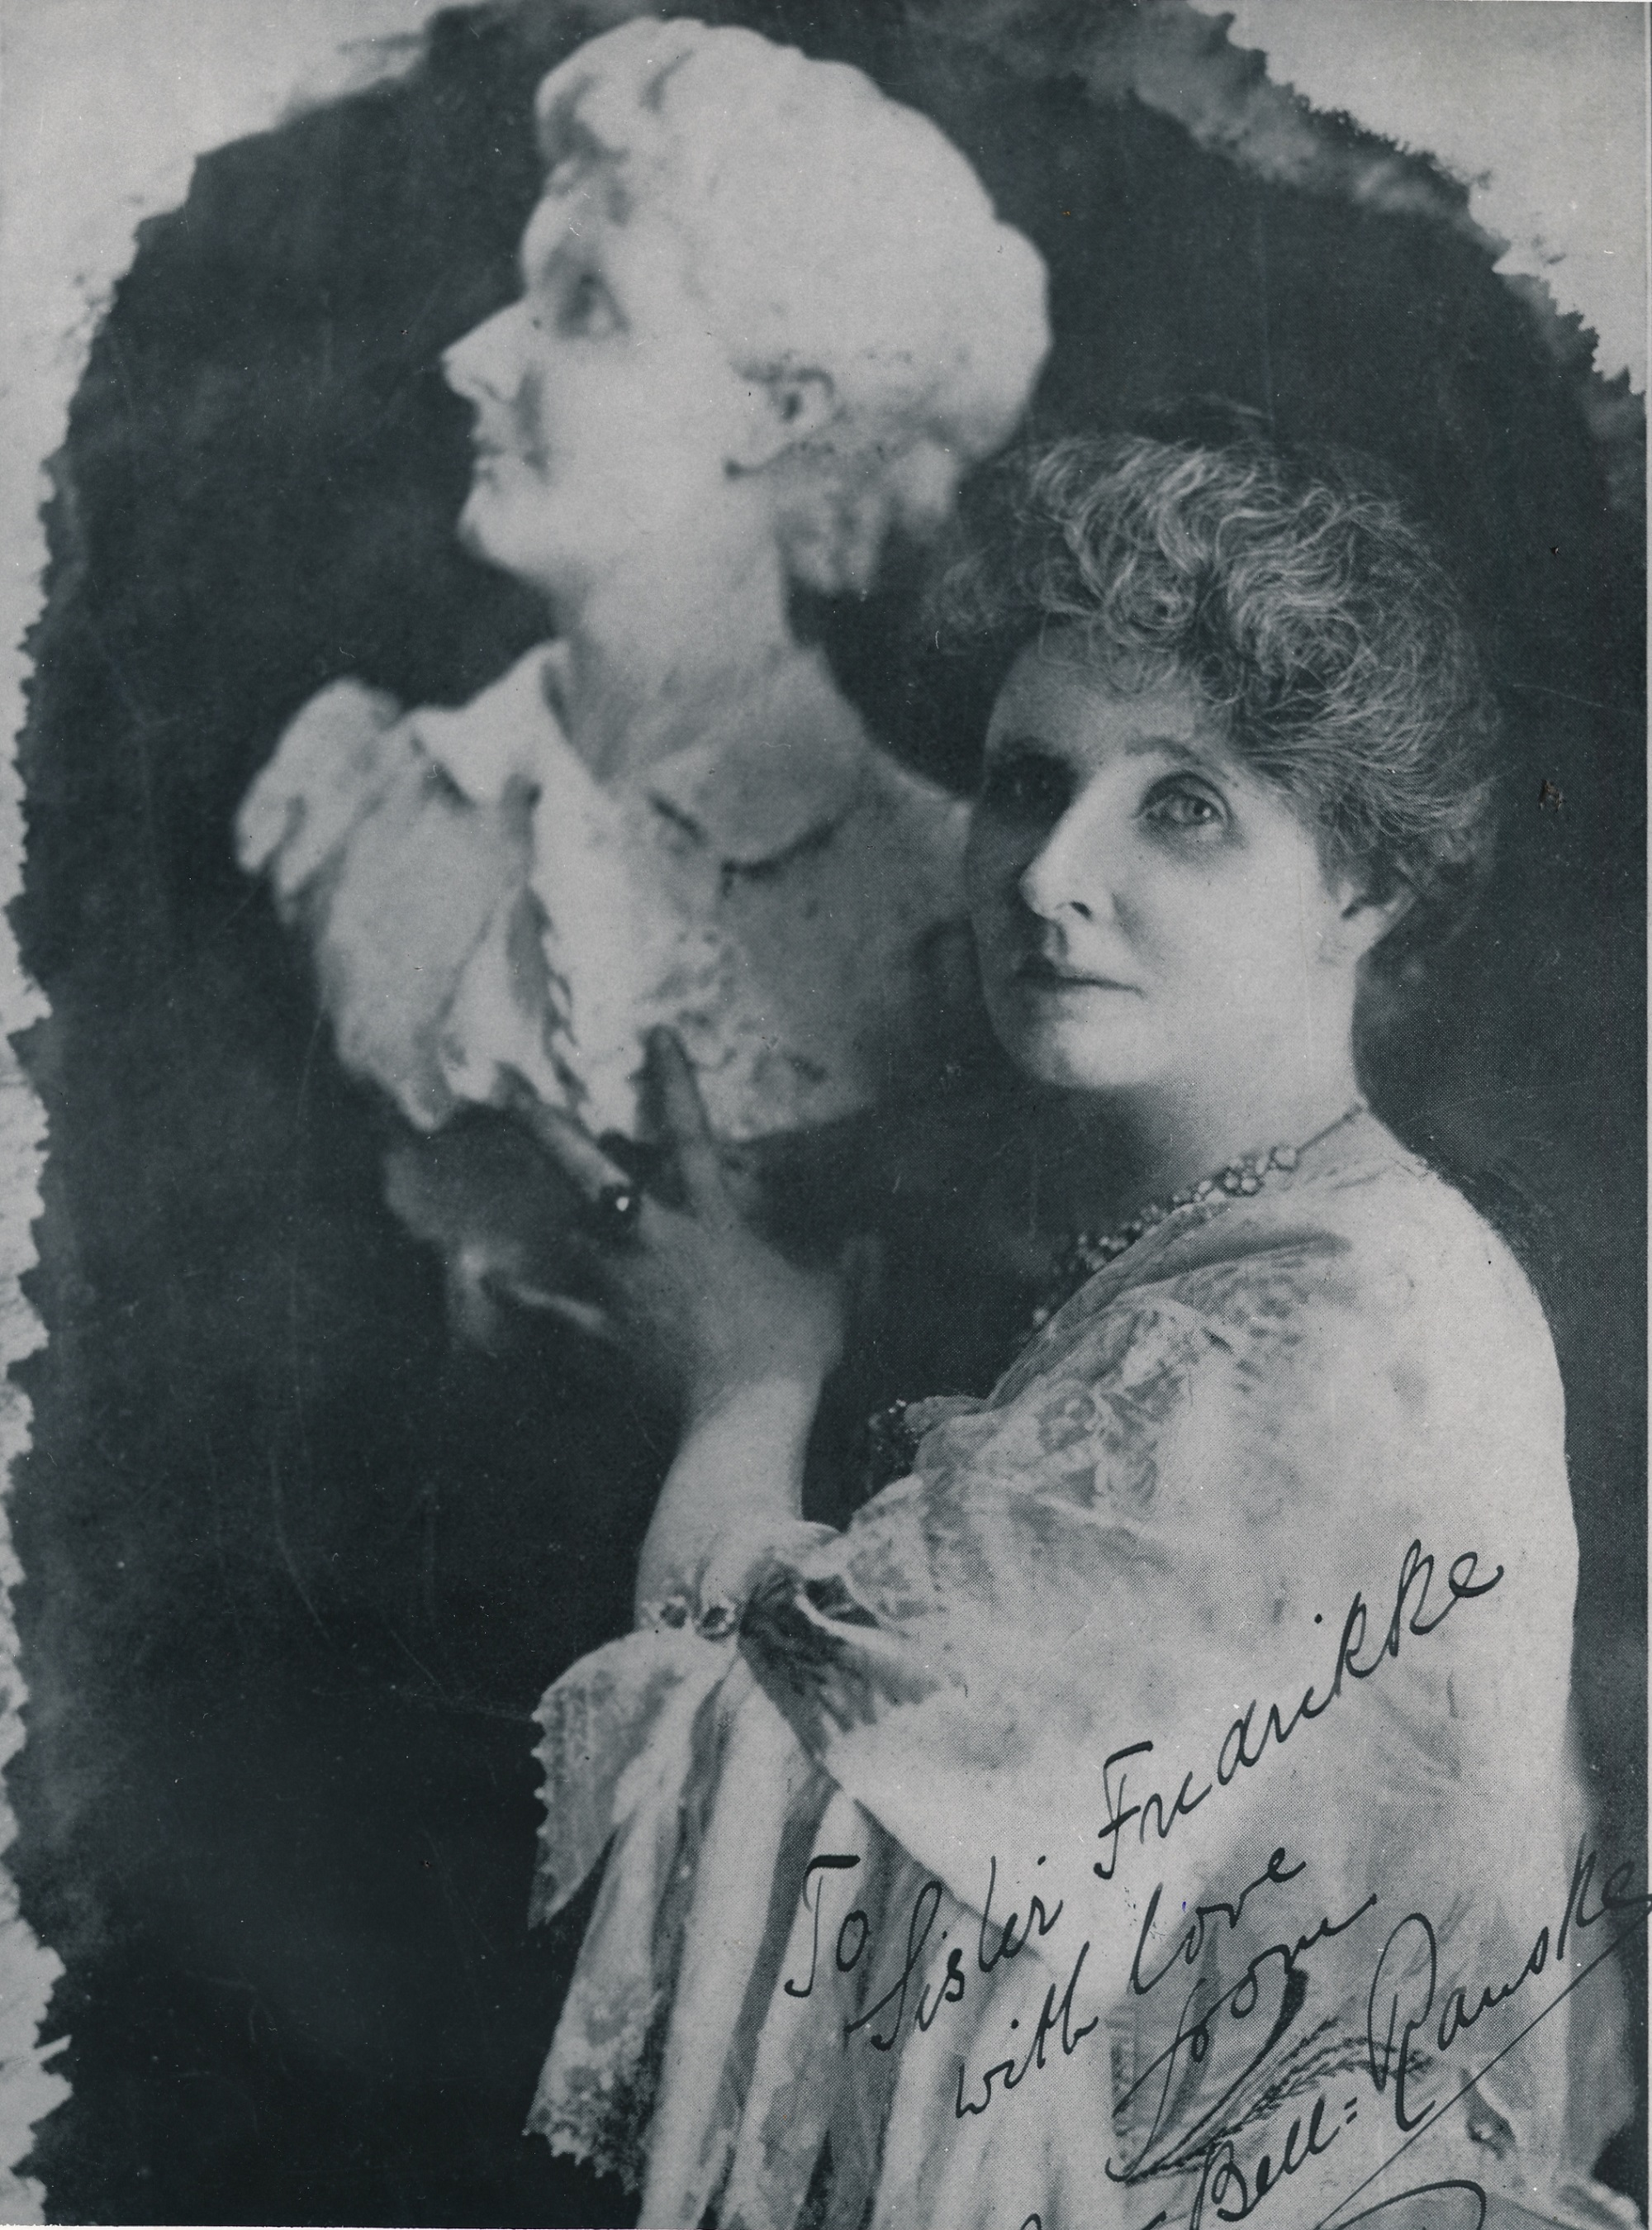 Photograph of Jutta Bell-Ranske (1862?-1934)